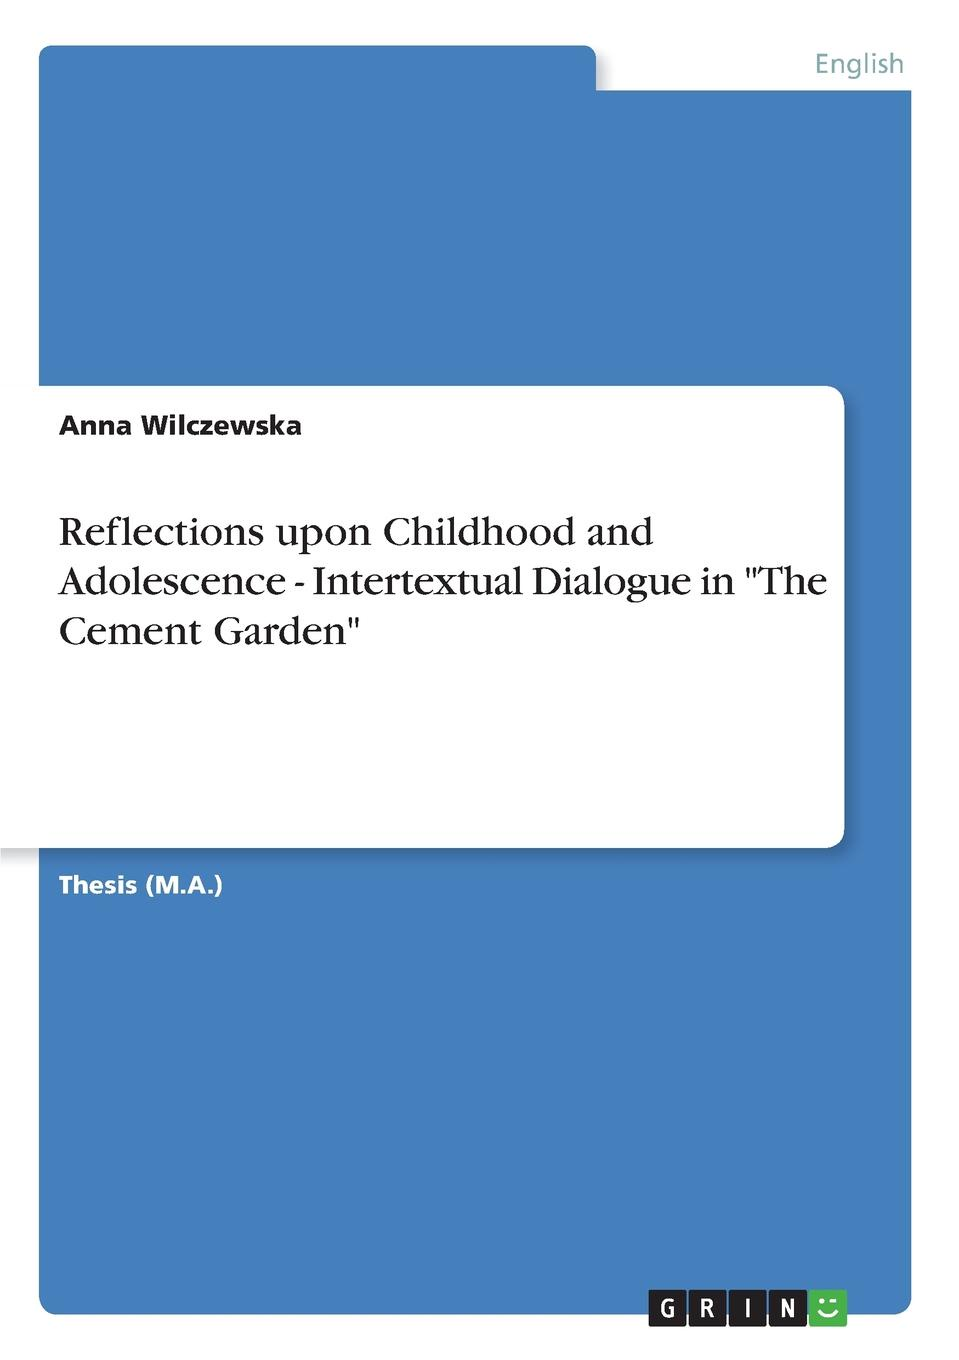 Anna Wilczewska Reflections upon Childhood and Adolescence - Intertextual Dialogue in